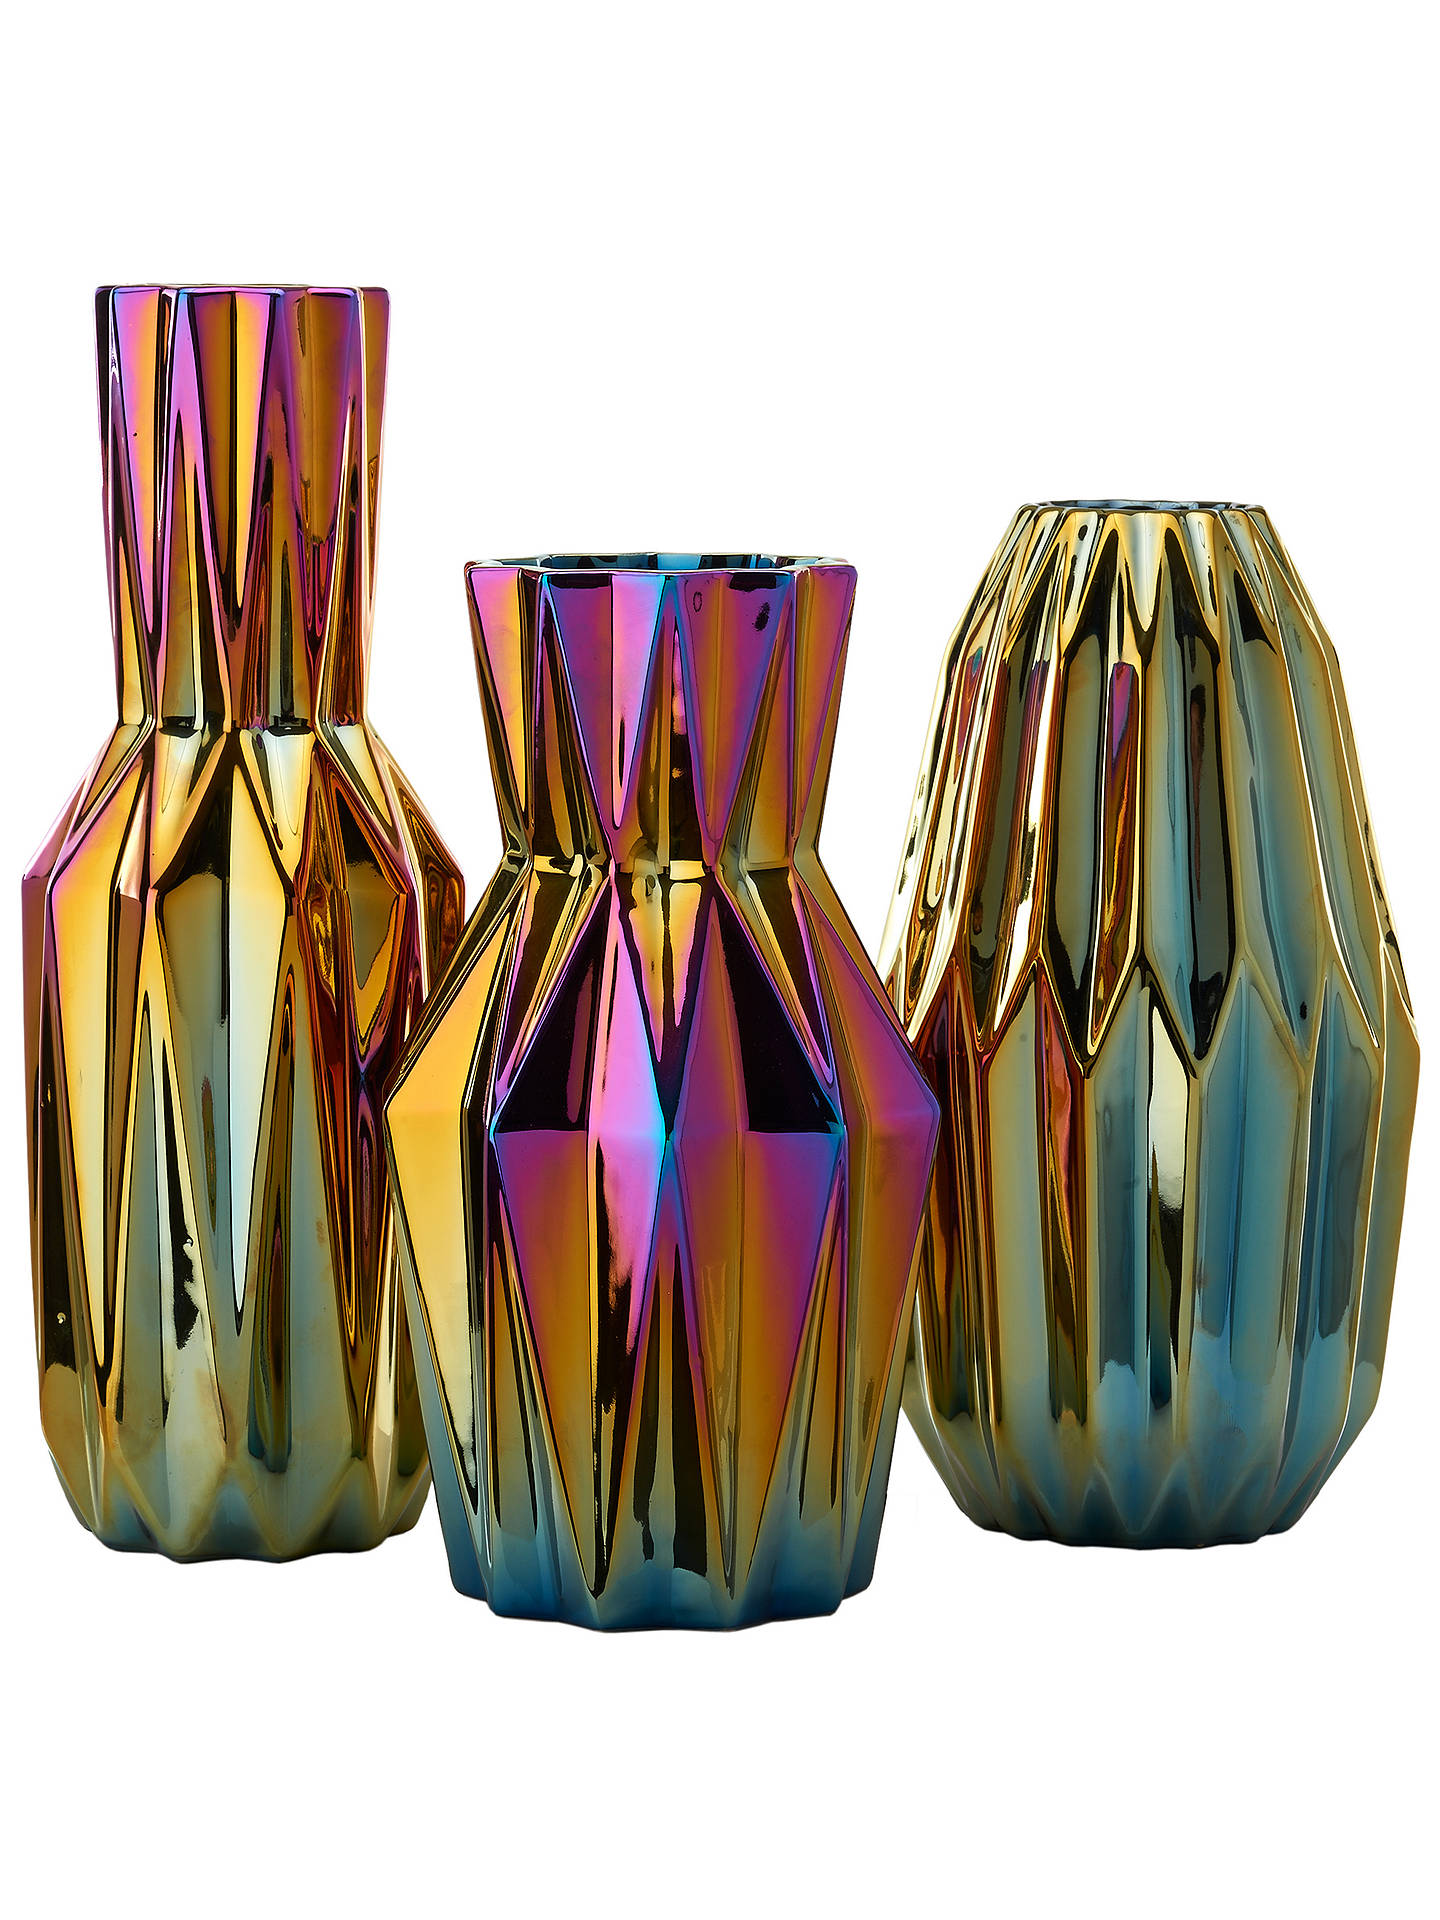 Buy Pols Potten Oily Folds Vase, Small Online at johnlewis.com